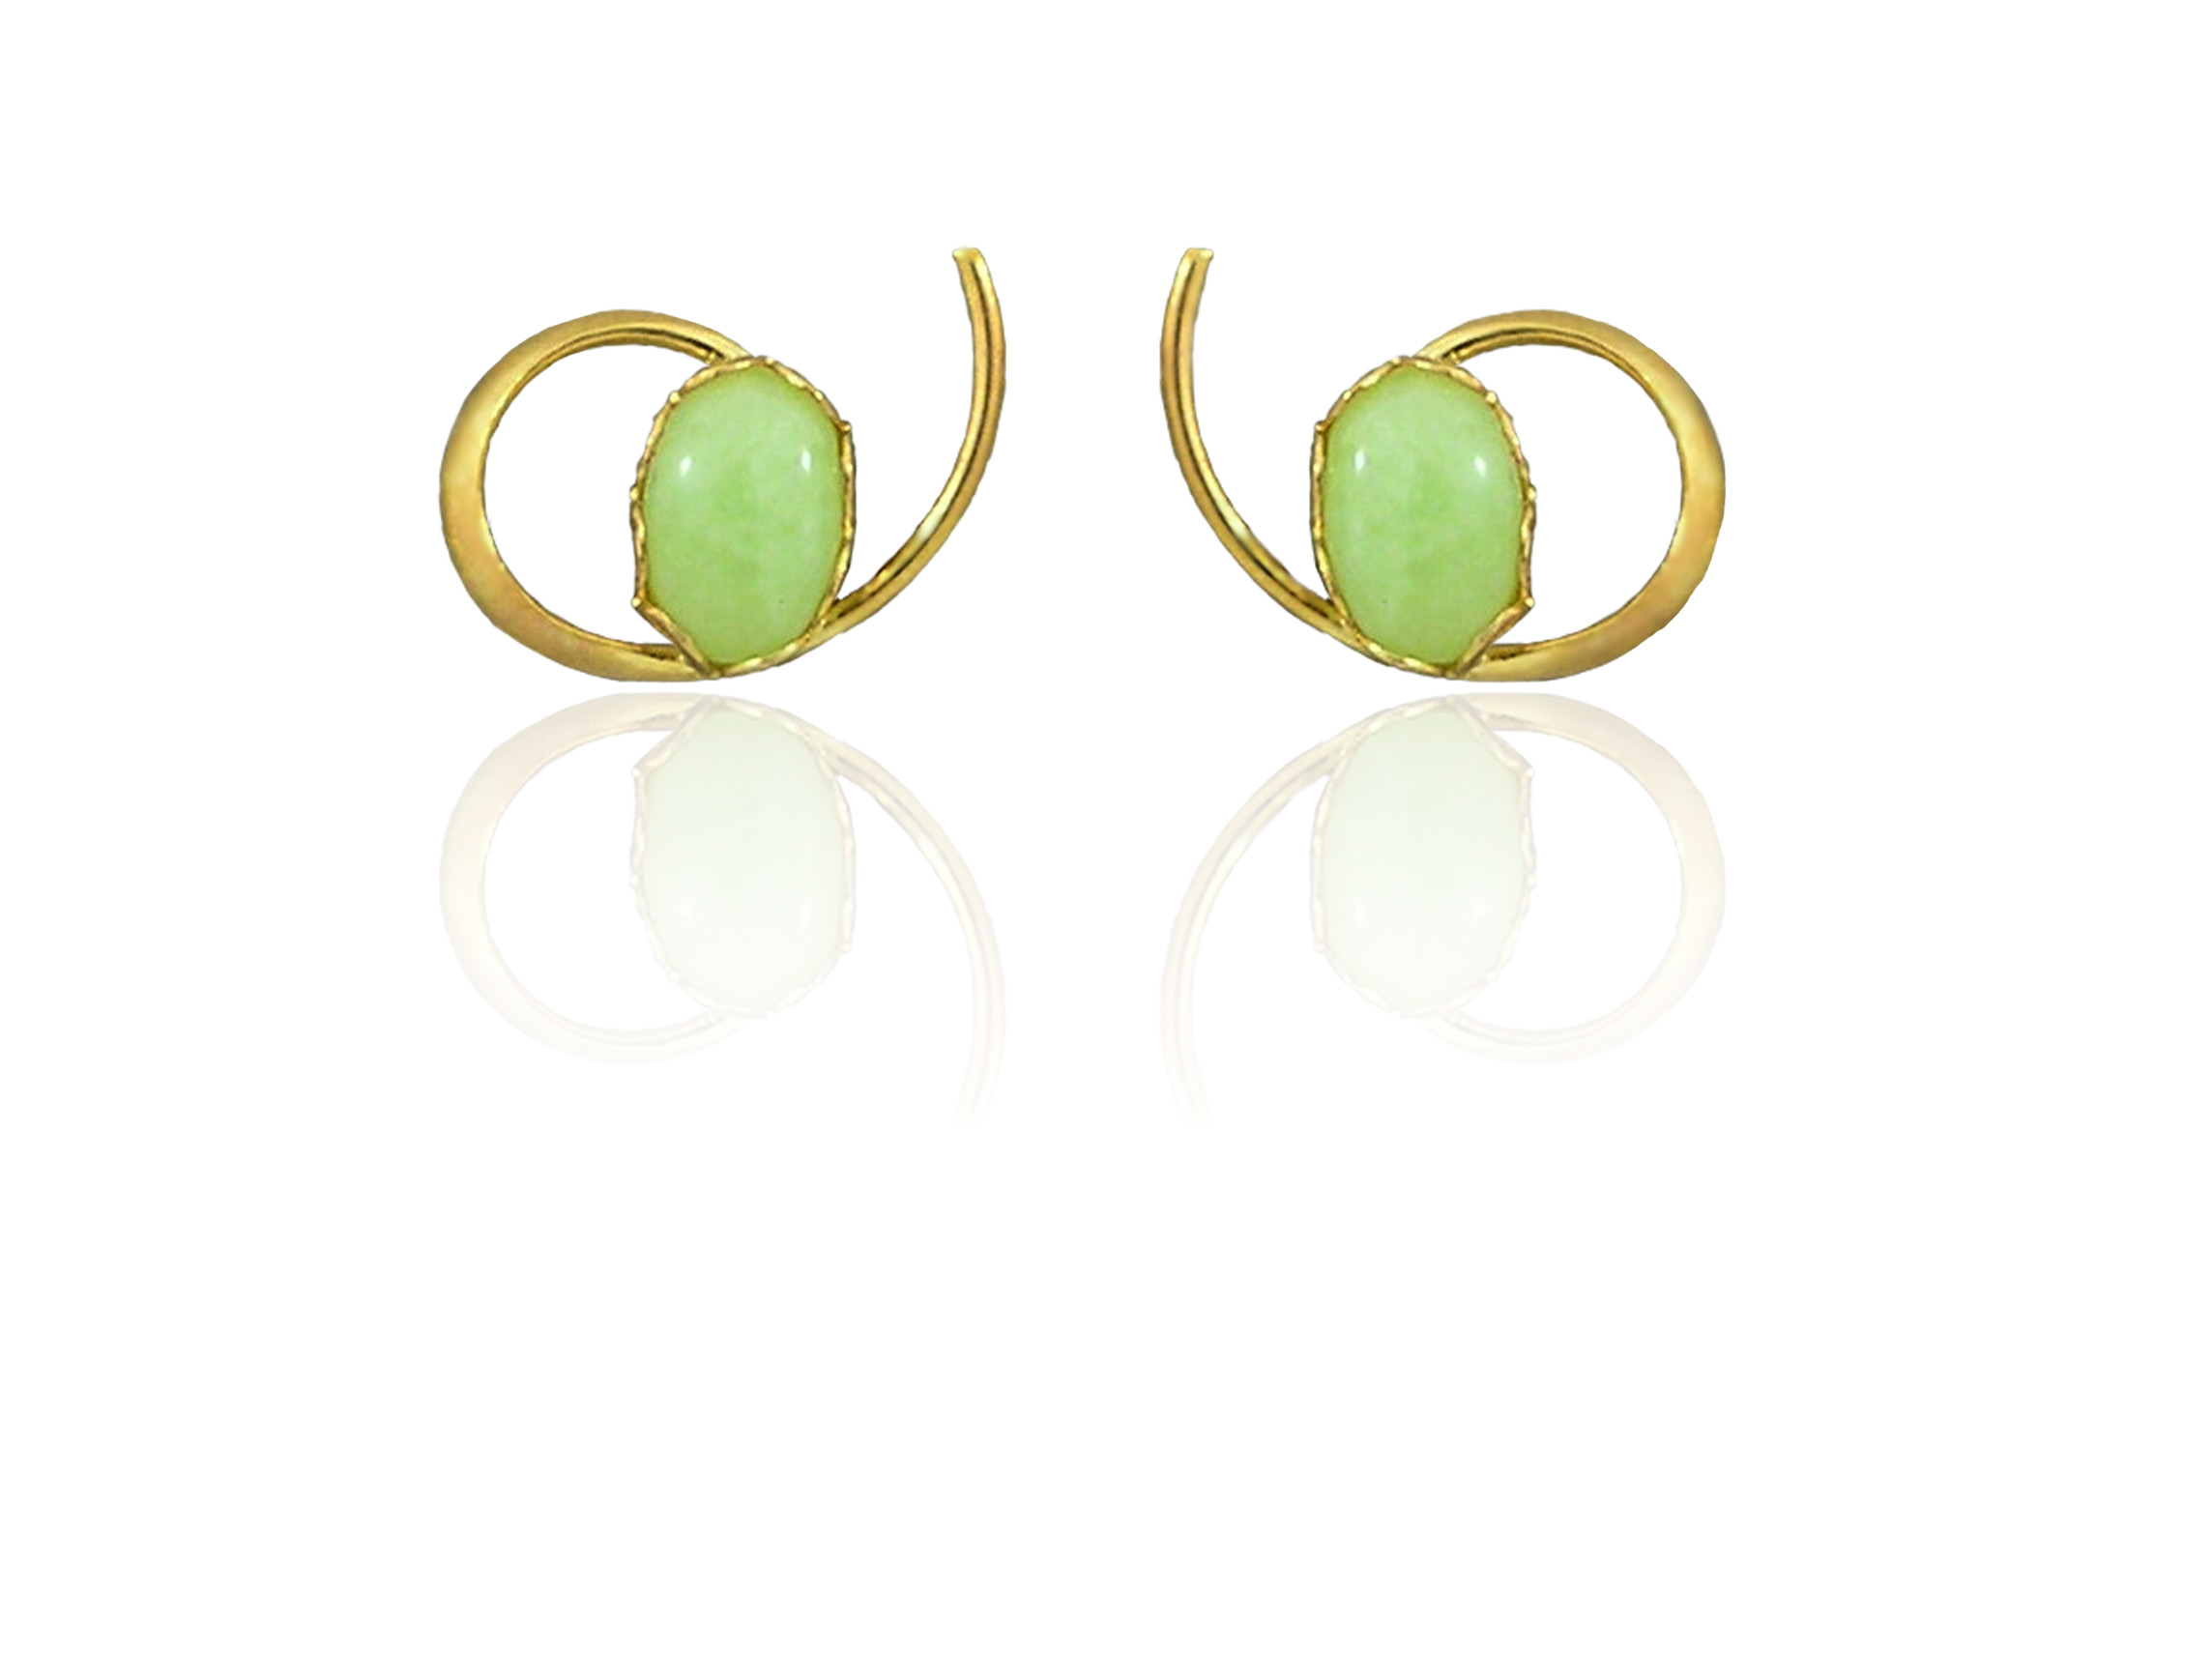 "Idocrase ""Aztec Jade"" Earrings in 14k Gold"